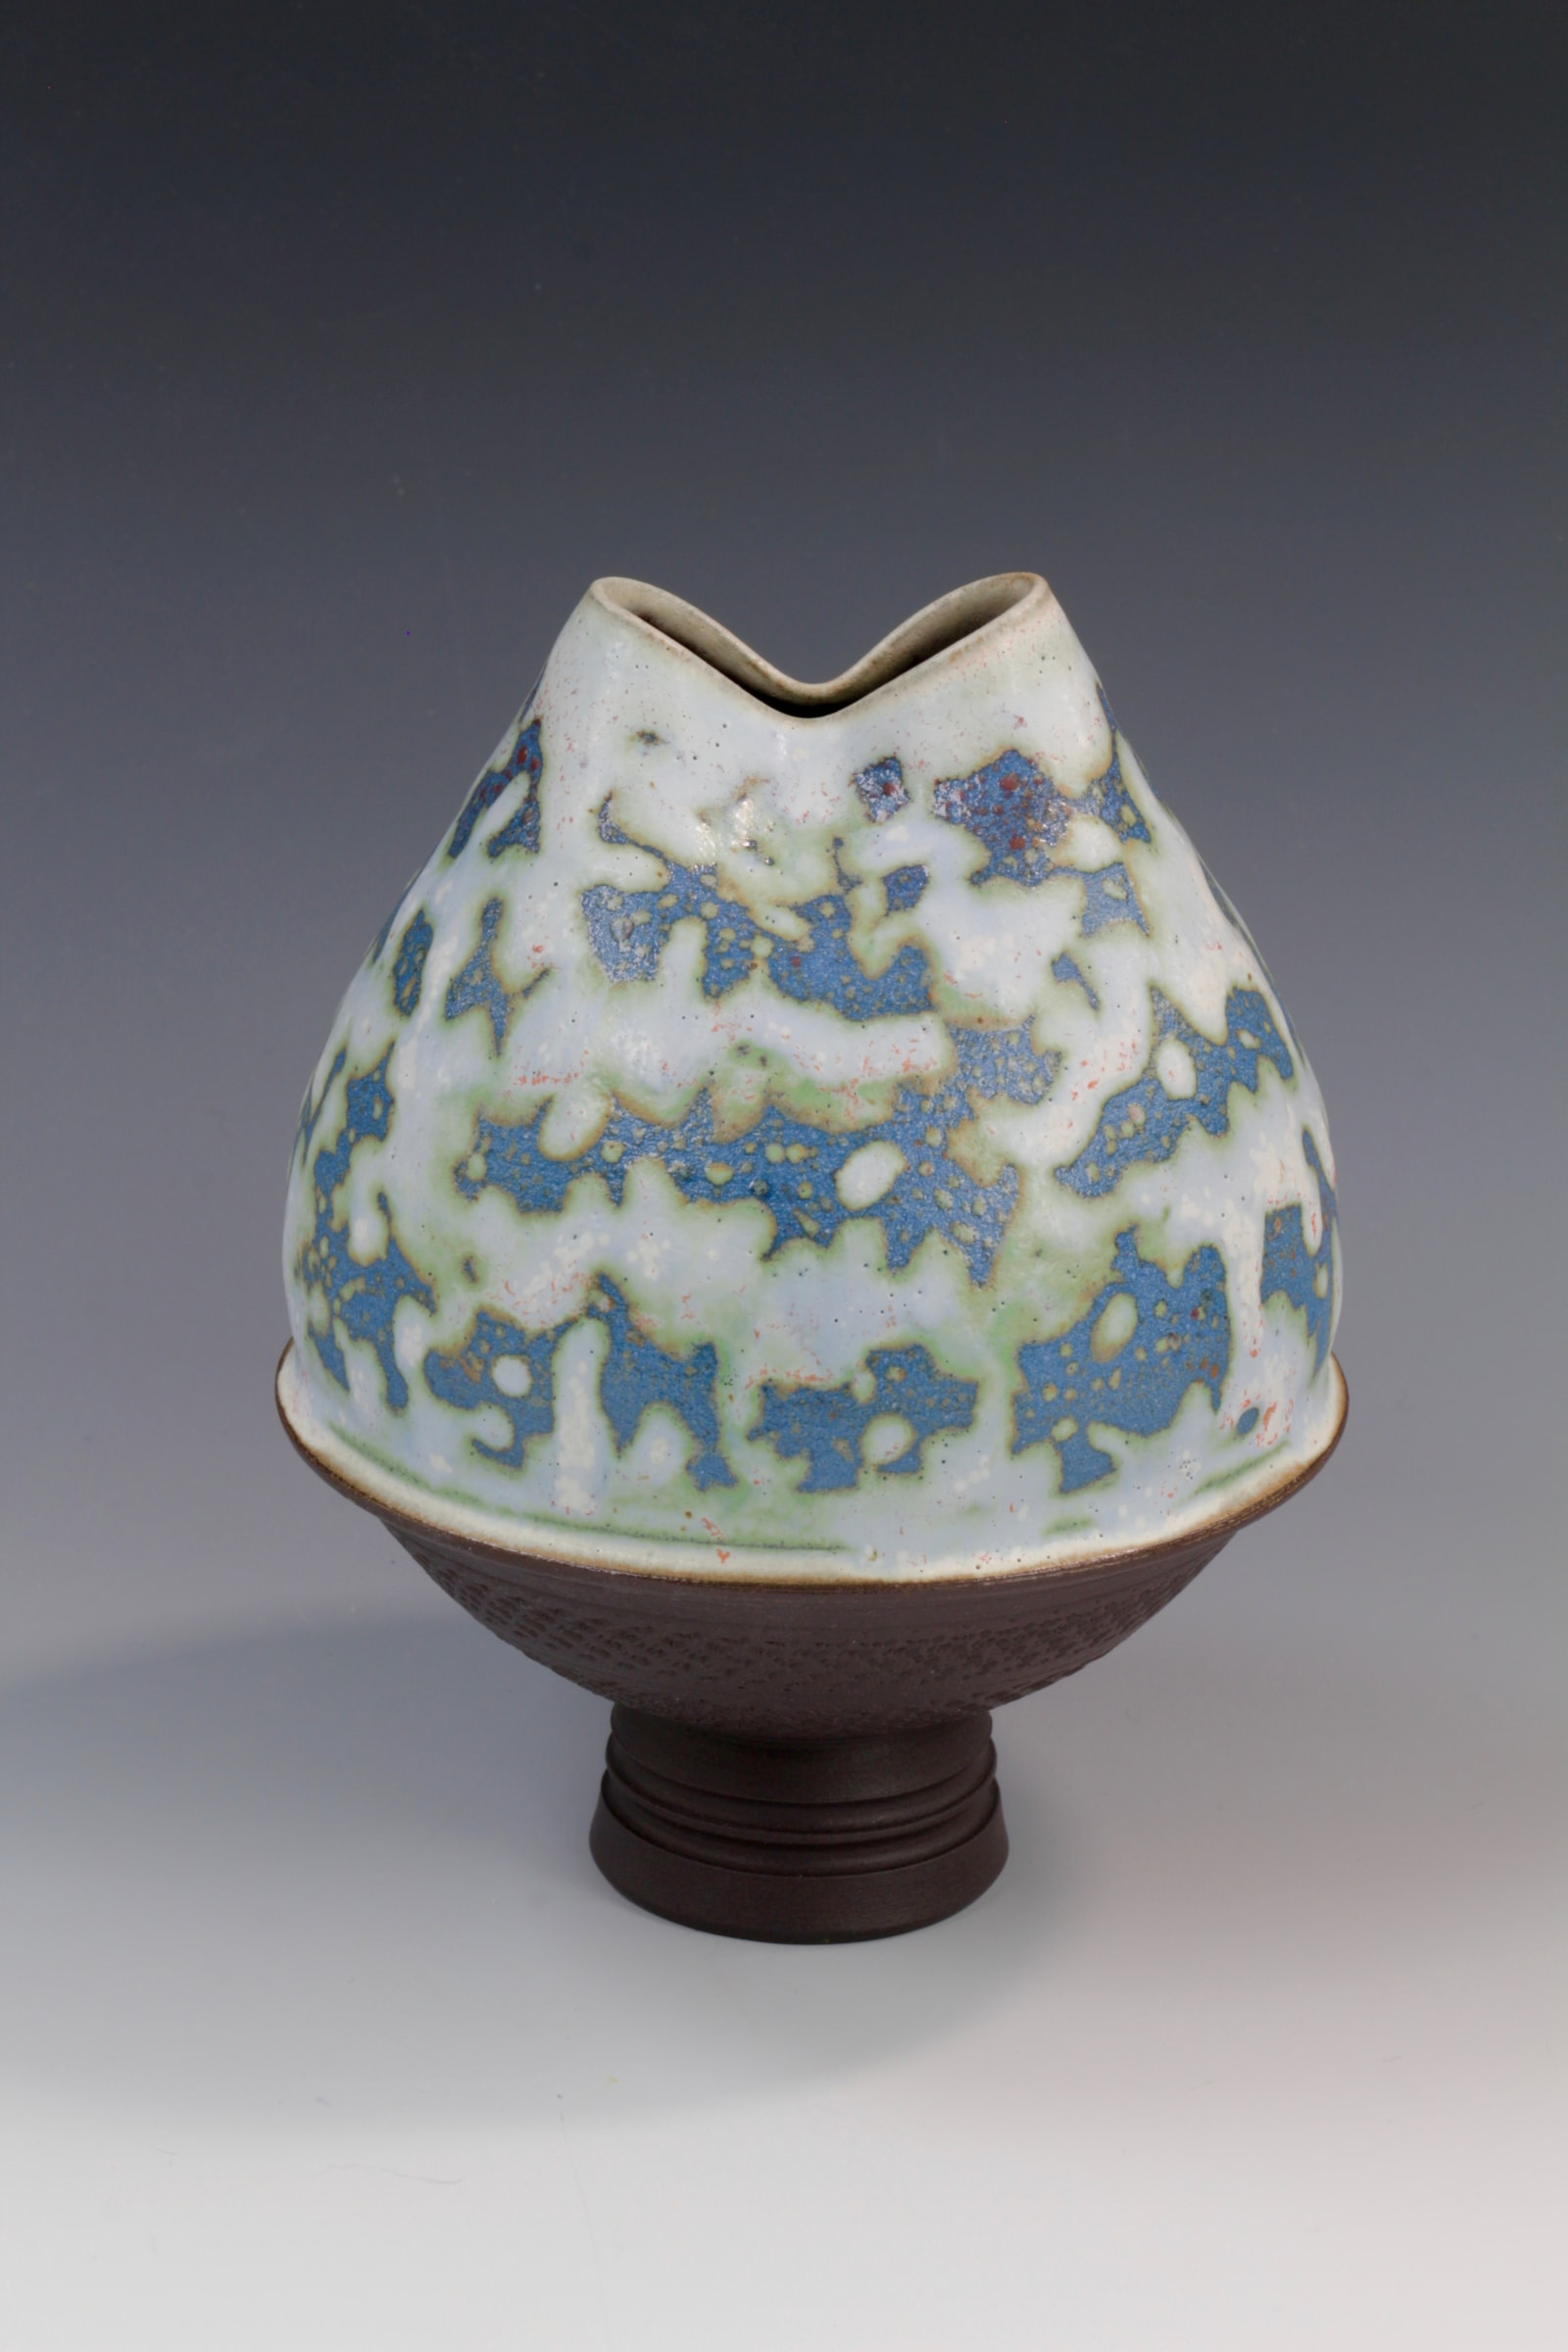 "<span class=""link fancybox-details-link""><a href=""/artists/61-geoffrey-swindell/works/6912-geoffrey-swindell-vessel-2020/"">View Detail Page</a></span><div class=""artist""><strong>Geoffrey Swindell</strong></div> b. 1945 <div class=""title""><em>Vessel</em>, 2020</div> <div class=""signed_and_dated"">impressed artist's seal to base</div> <div class=""medium"">porcelain</div><div class=""copyright_line"">Own Art: £ 25 x 10 Months, 0% APR</div>"